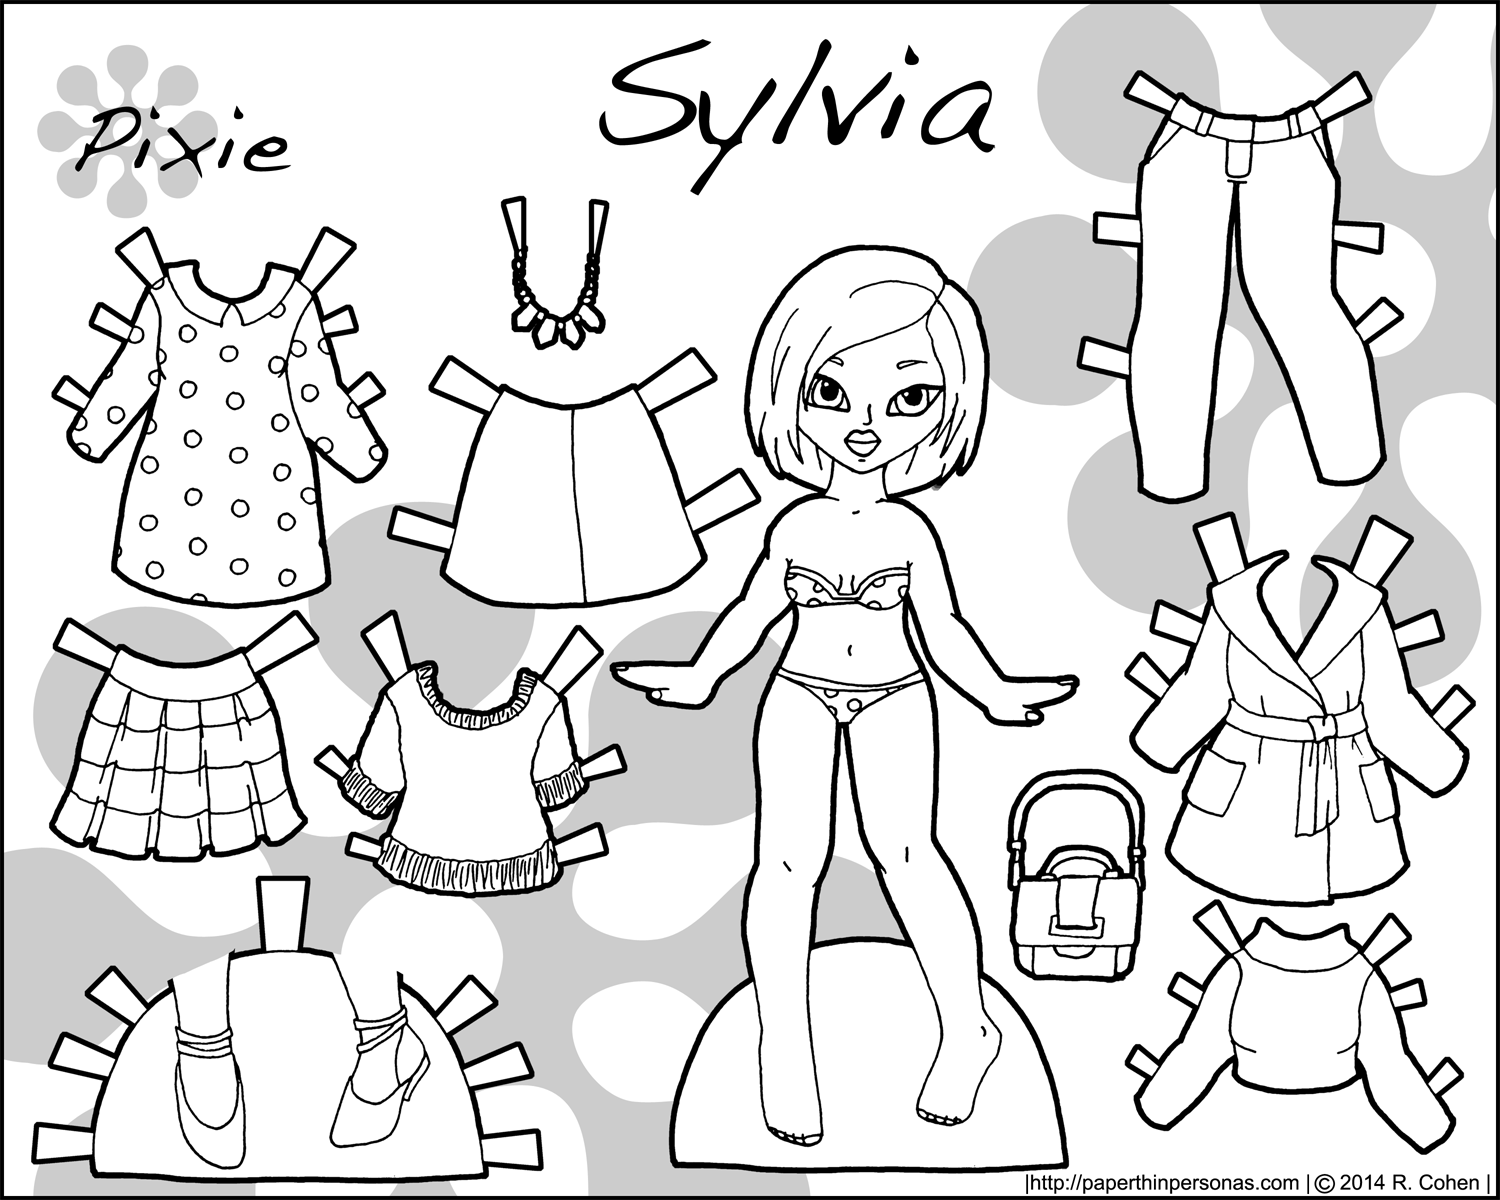 printable paper dolls from paper thin personas